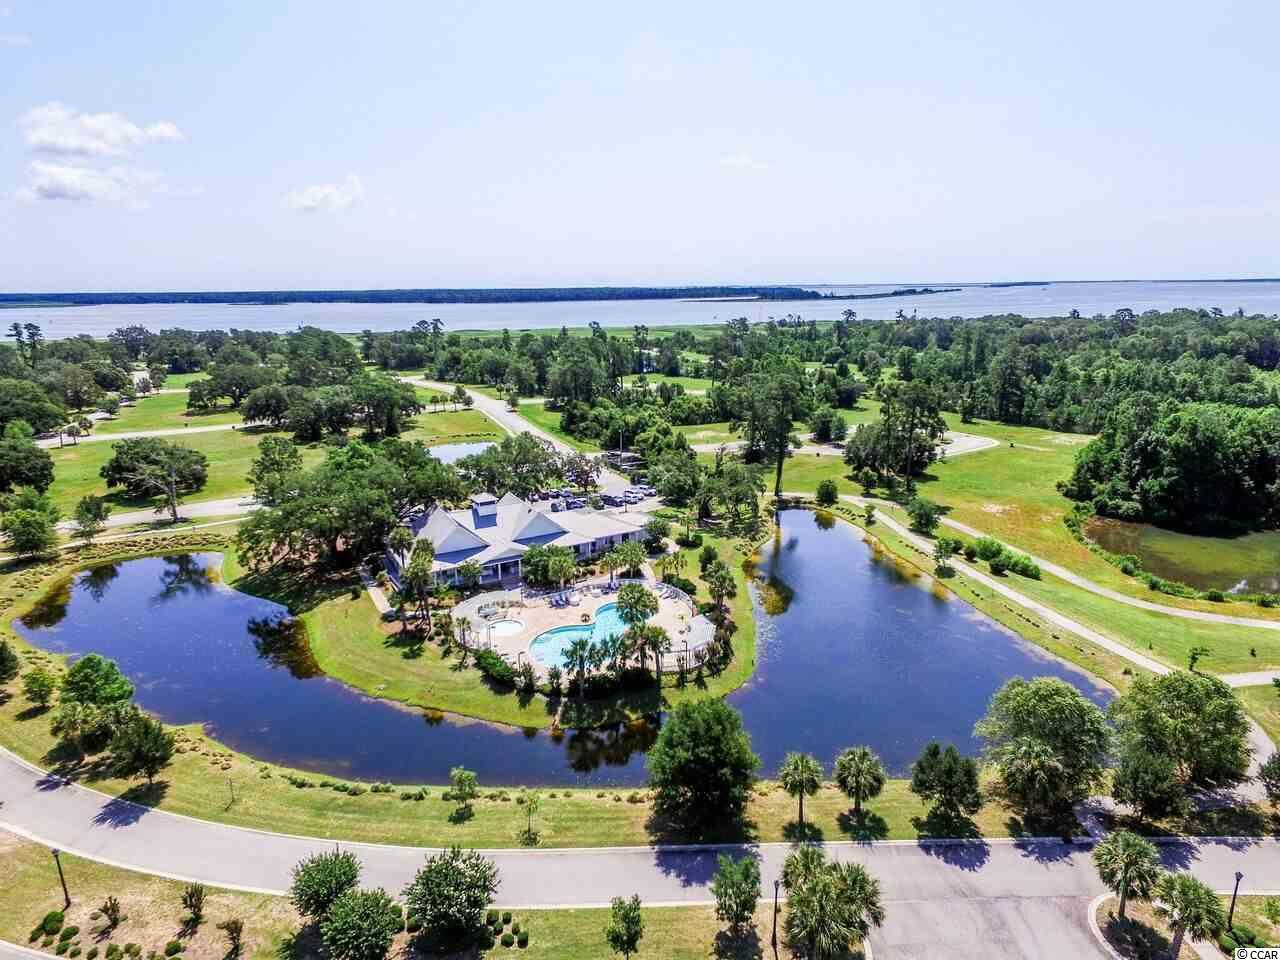 Build your dream home in this gated community located along Winyah Bay and the Intercoastal Waterway, near Historic Georgetown SC. The furnished club house includes a kitchen and bar along with a fully equipped fitness center.  Enjoy the pool, hot tub and kiddie pool.  RV and boat storage is available across from the community. All infrastructure is in place and waiting for you to build.